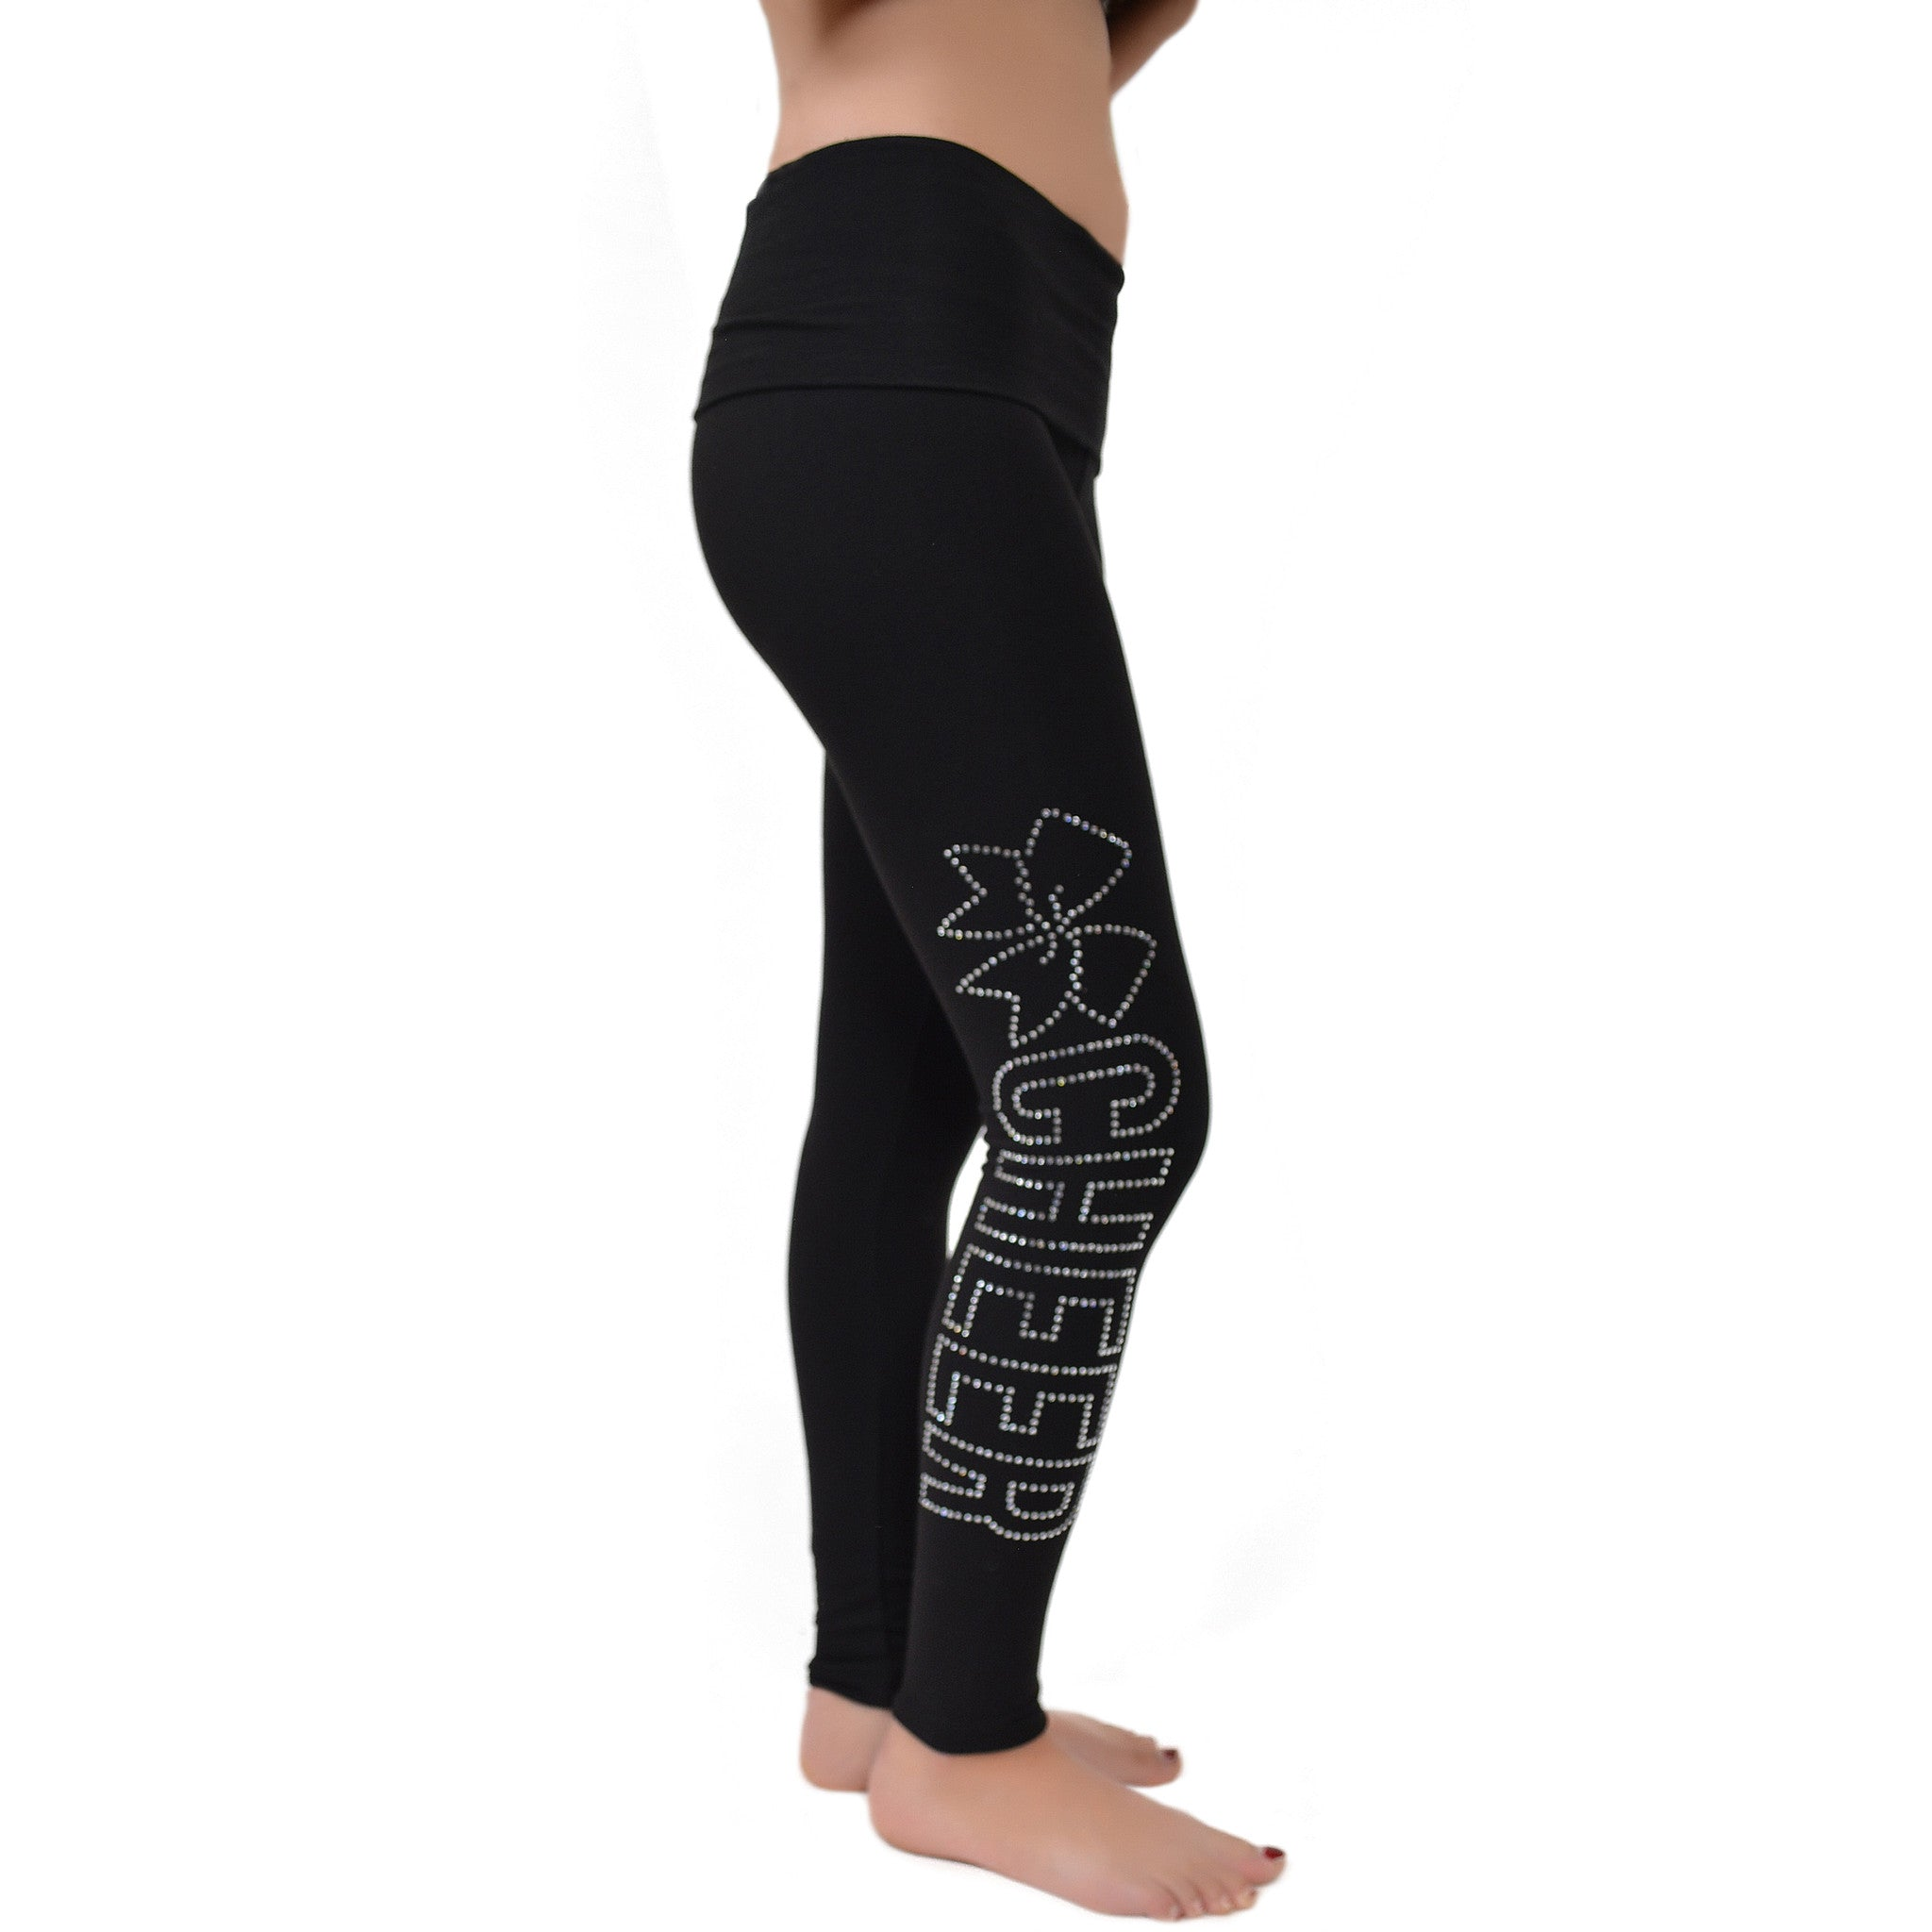 Women's Cheer Rhinestone Foldover Cotton Leggings